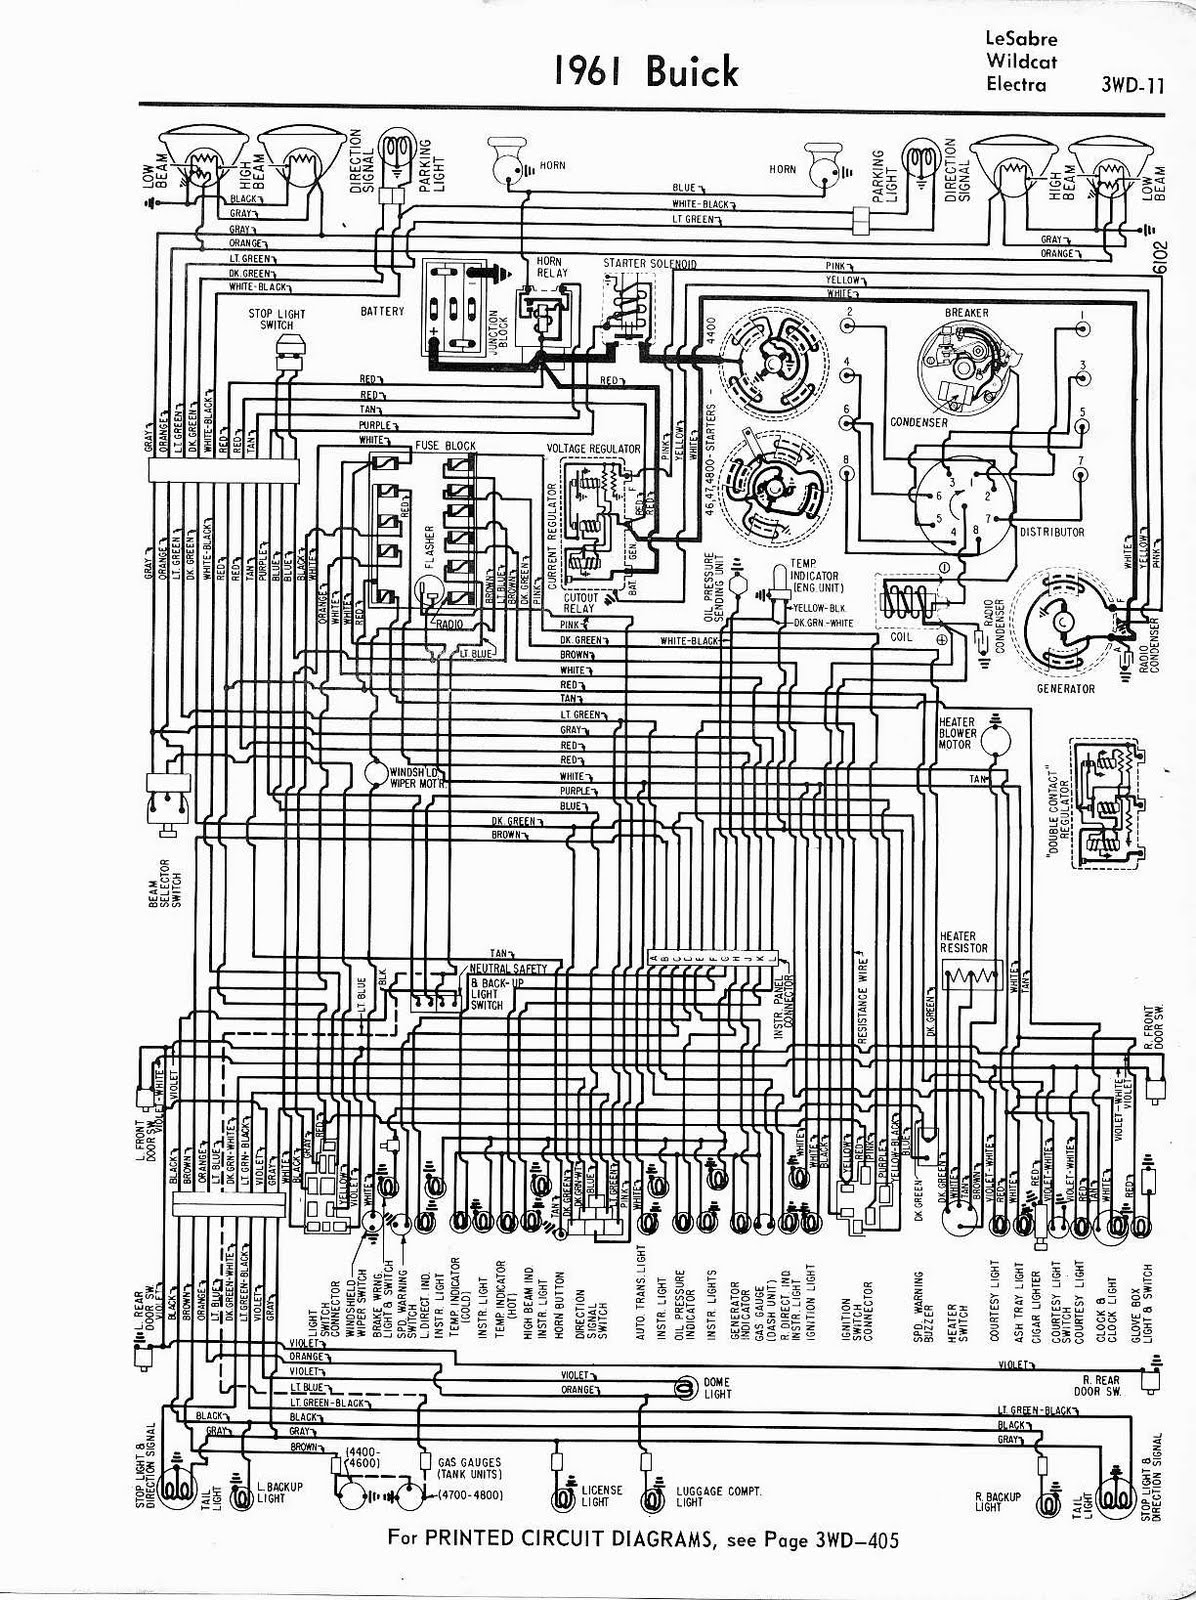 Buick Lesabre Wildcat Electra Wiring on 1965 Mustang Power Steering Diagram